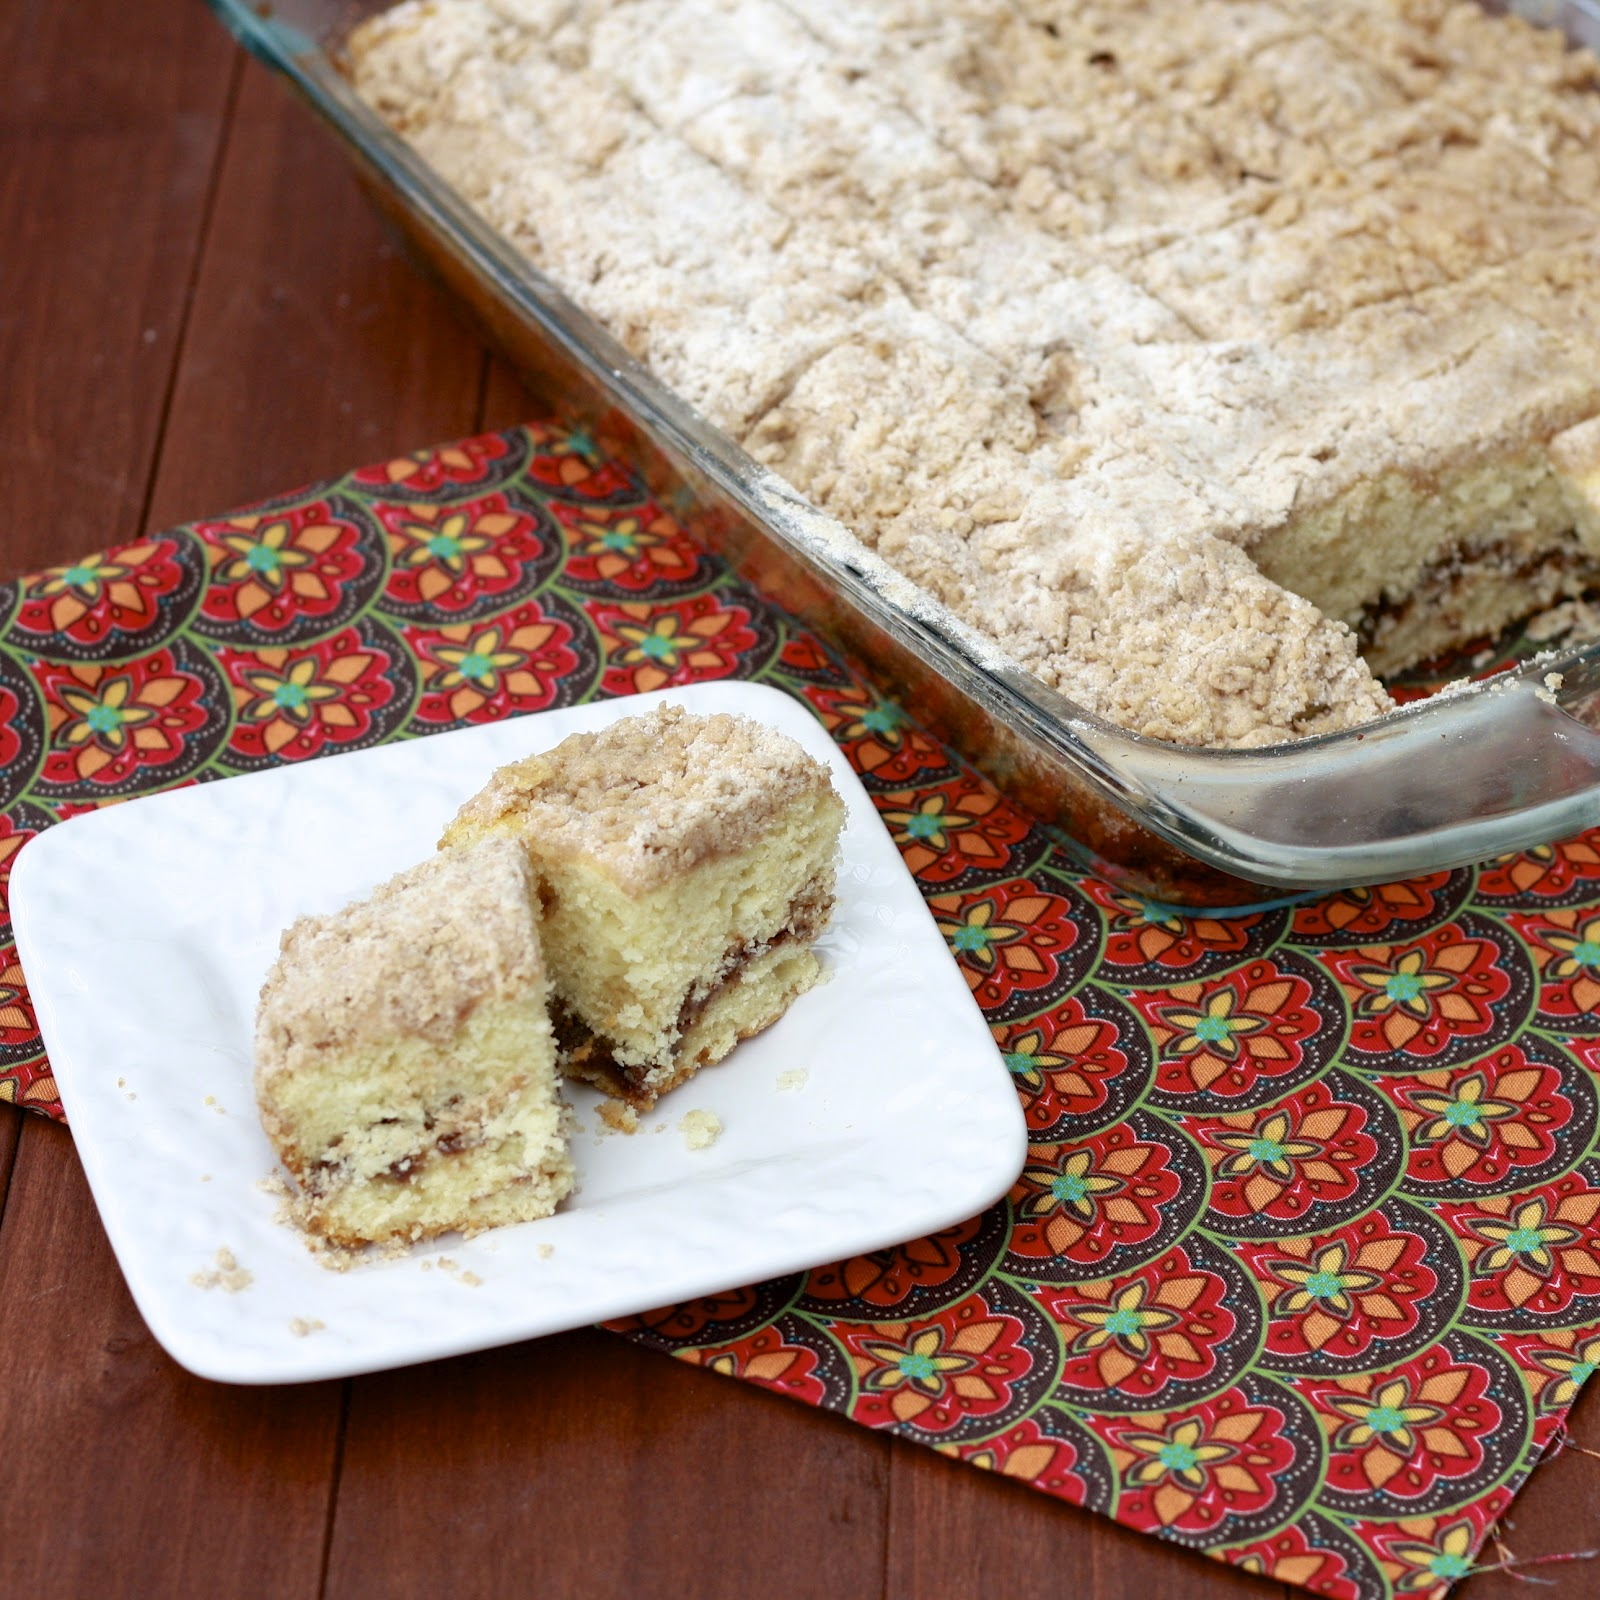 Here's the story about this coffee cake: